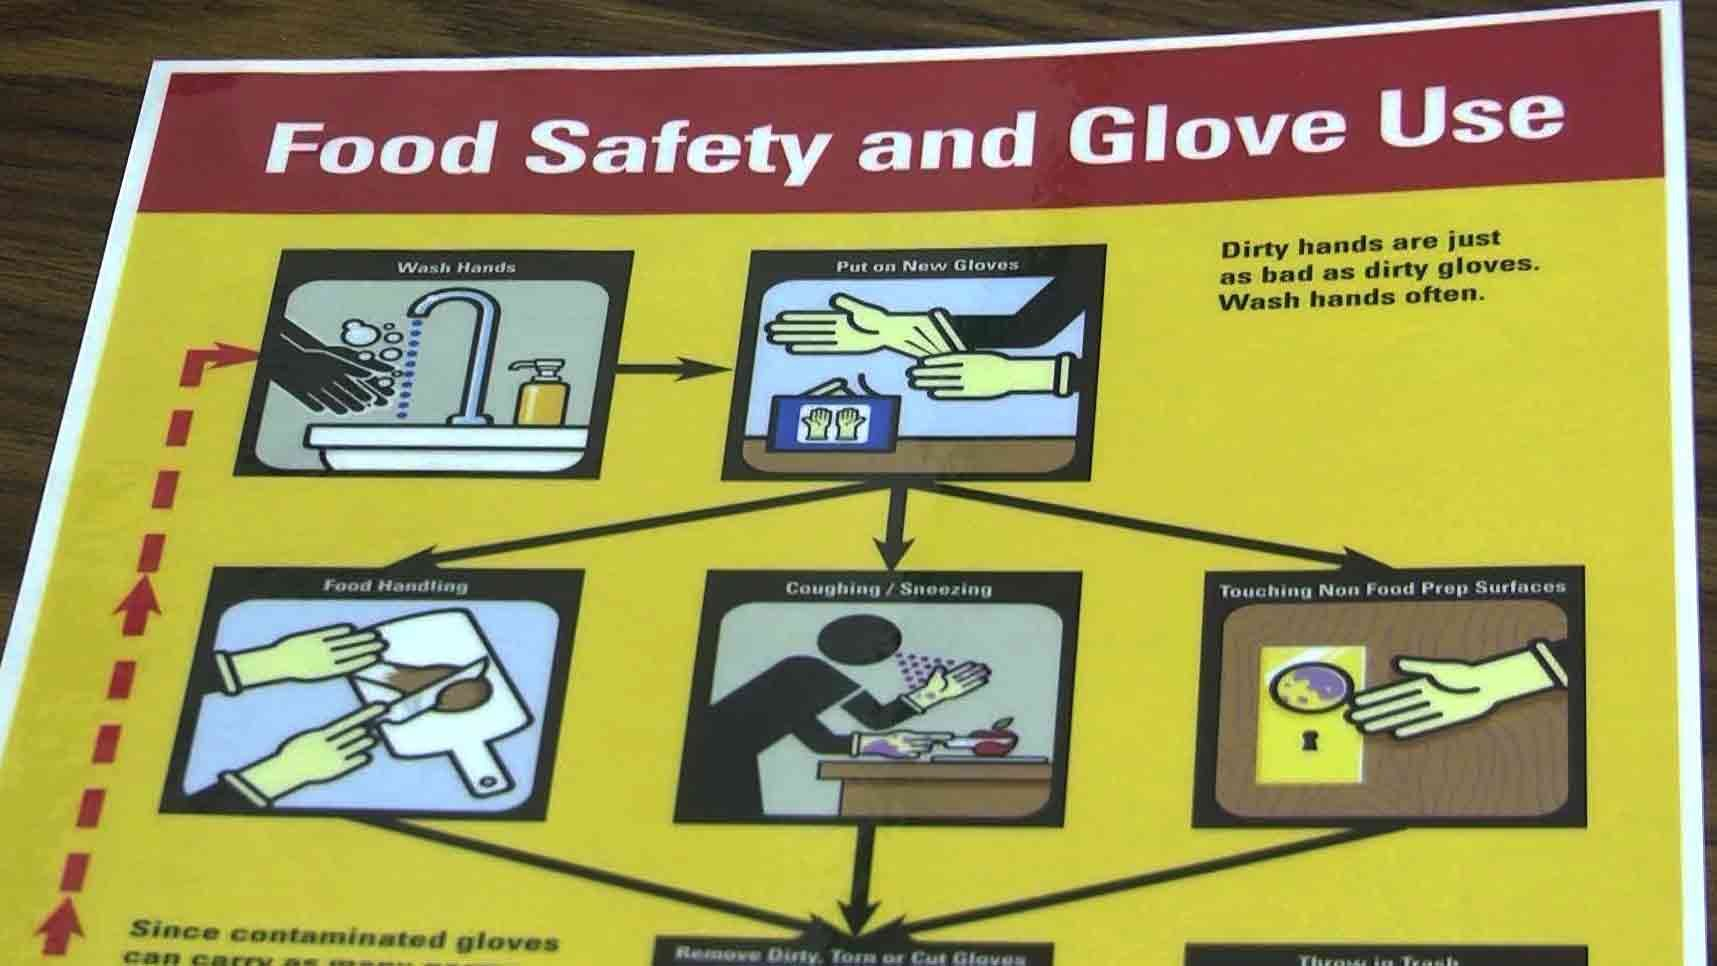 Food safety and glove use reference sheet.